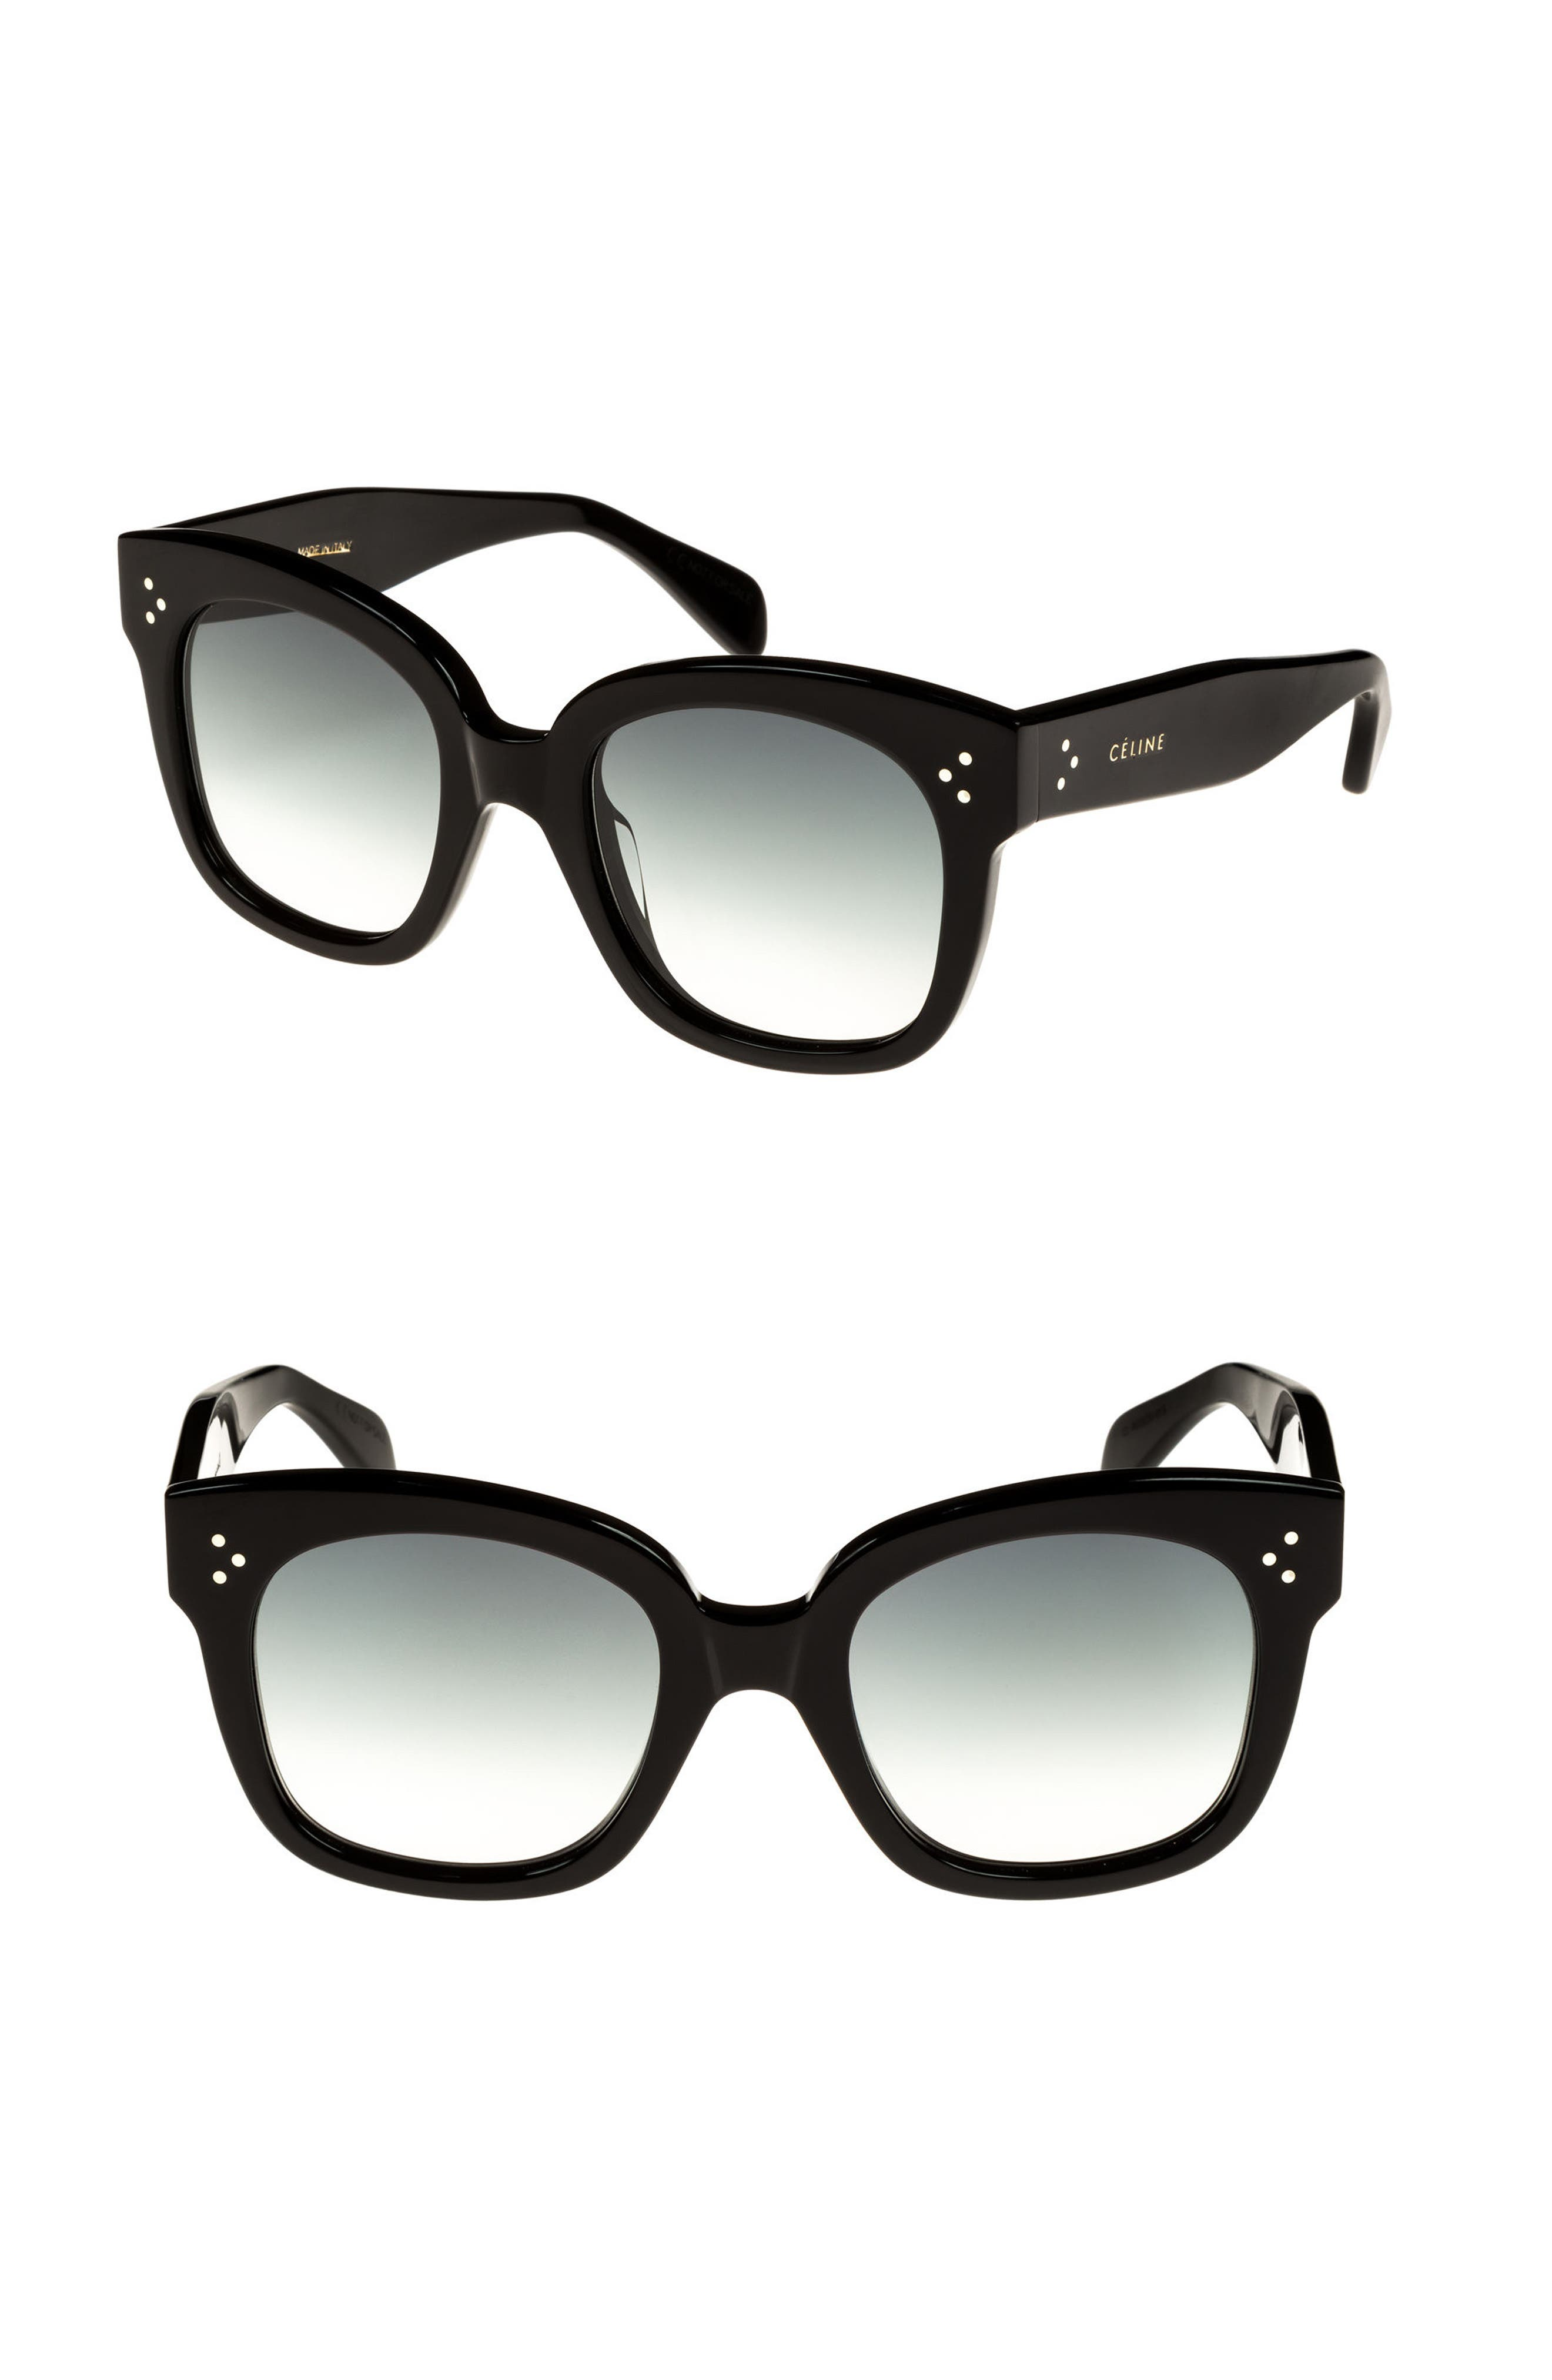 54mm Square Sunglasses,                             Main thumbnail 1, color,                             Black/ Smoke